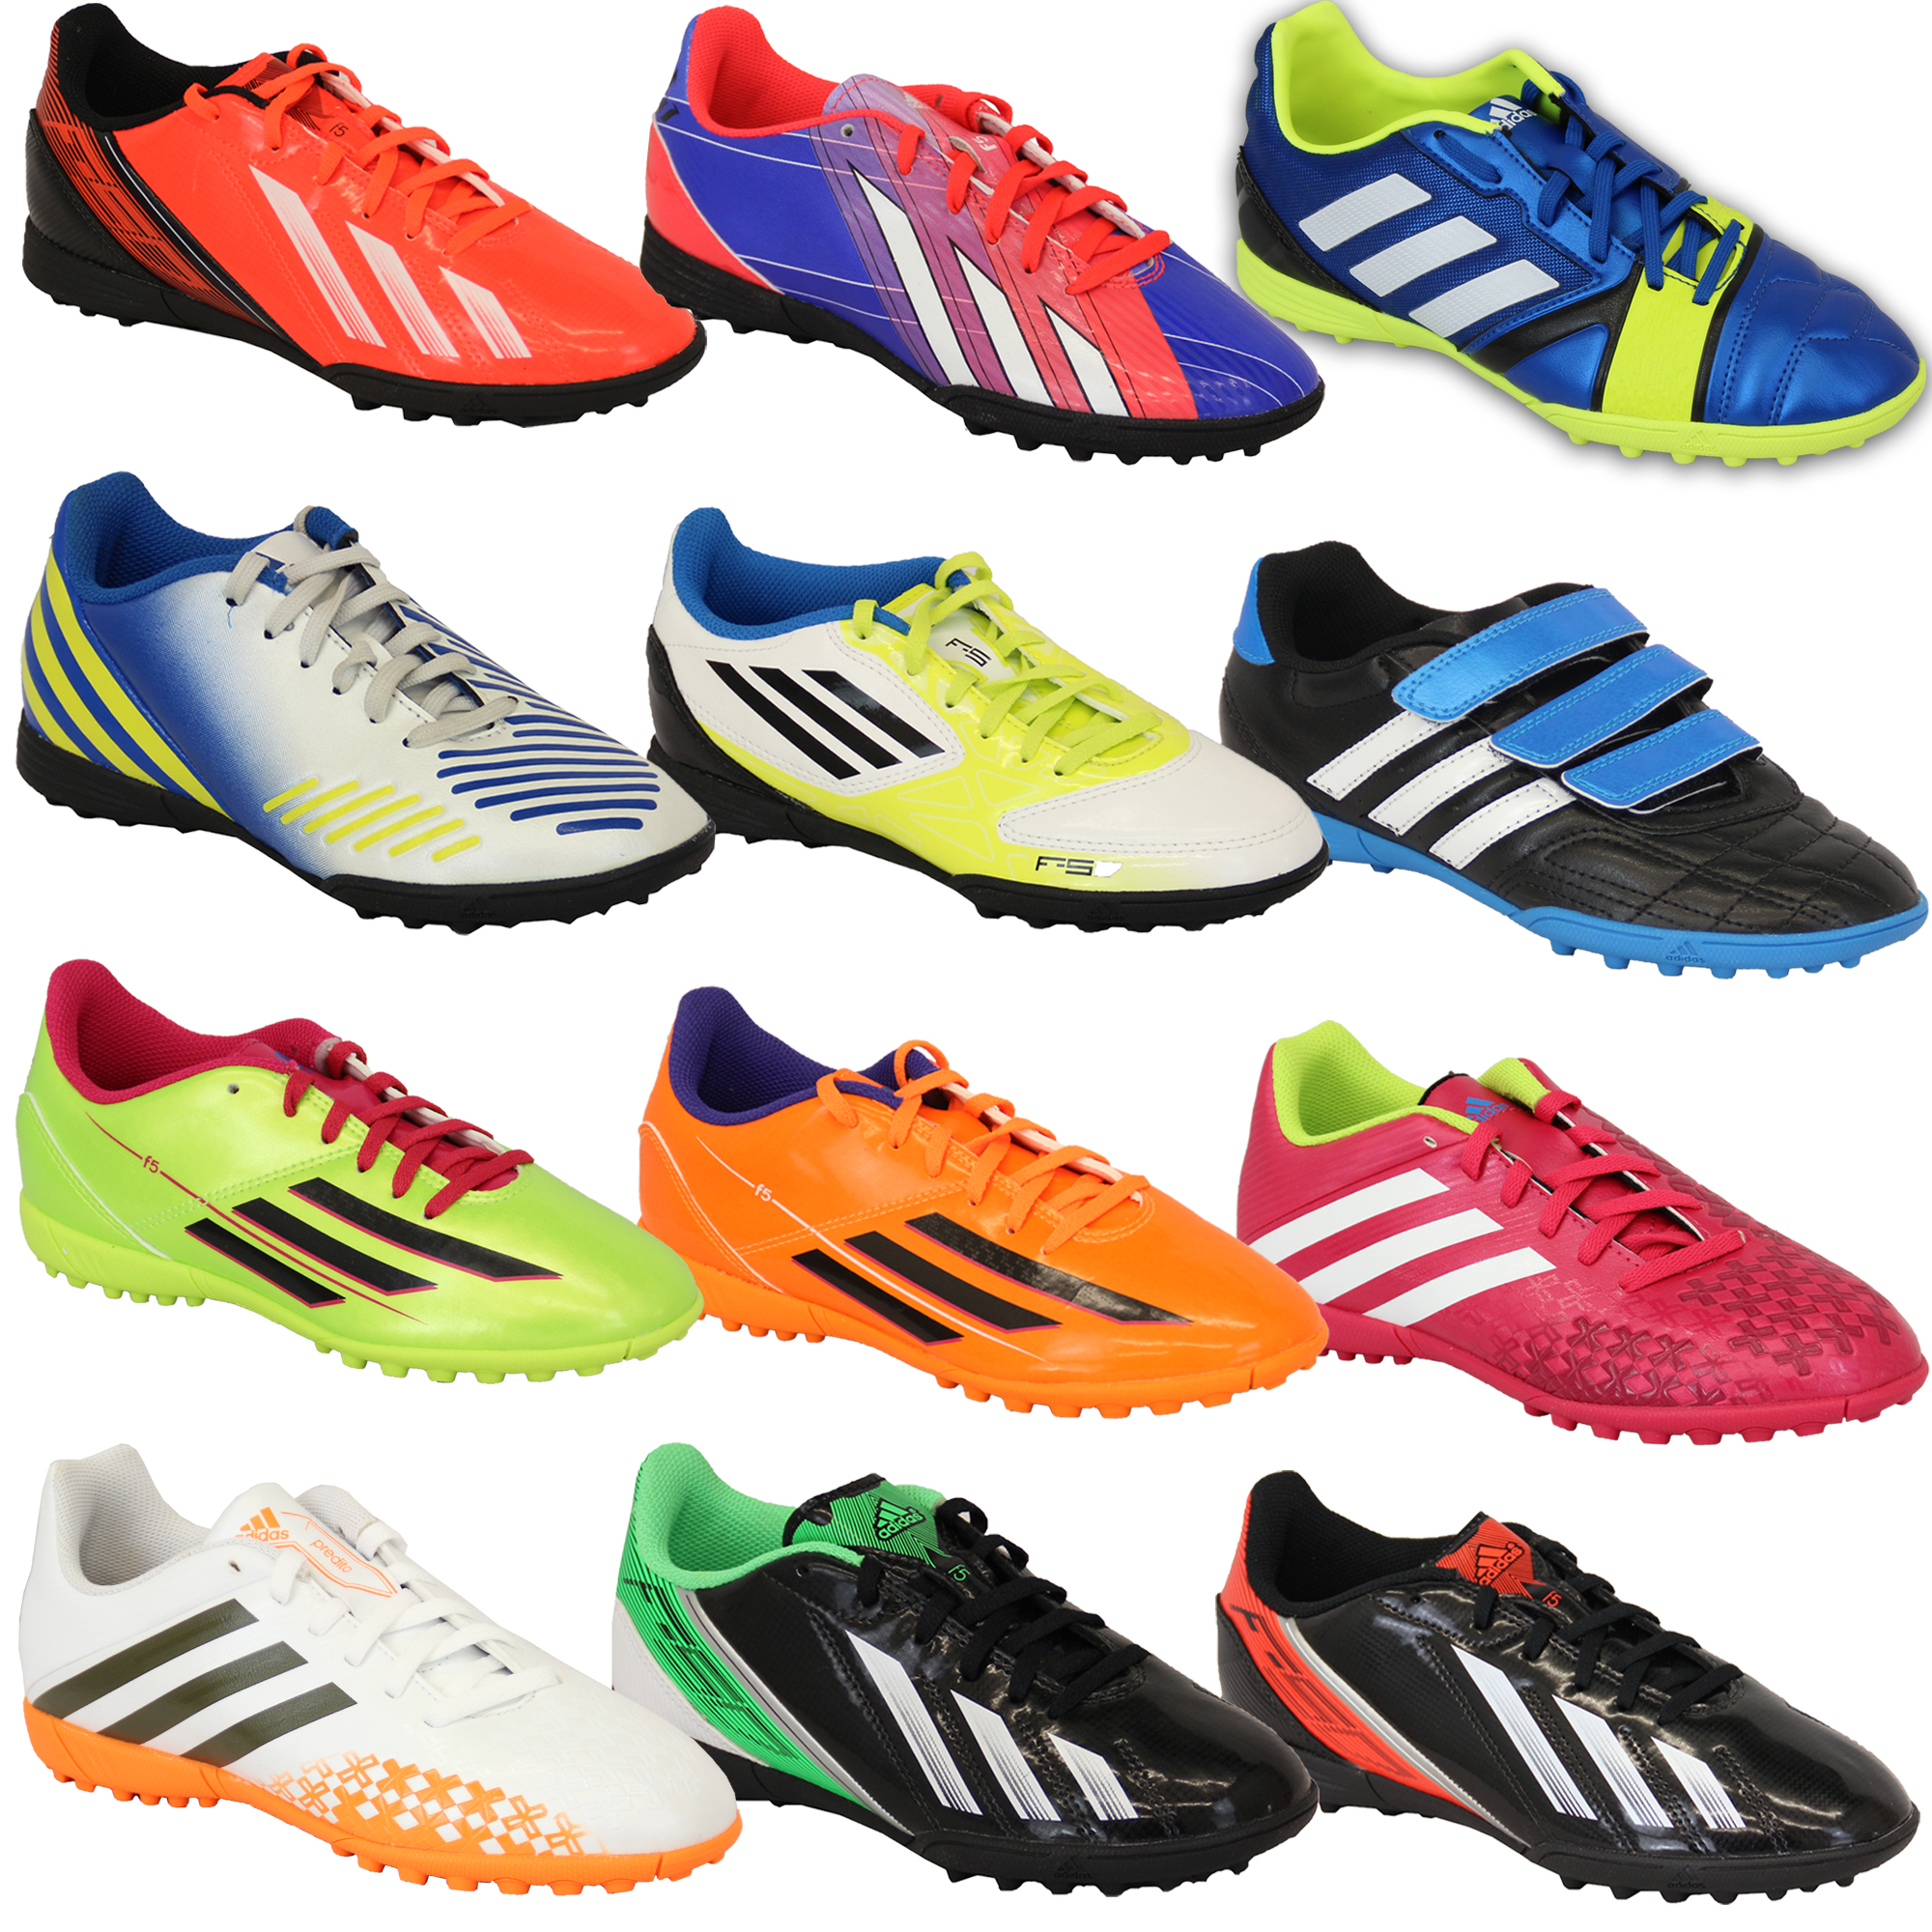 Boys-ADIDAS-Trainers-Kids-Football-Soccer-Astro-Turf-Shoes-Lace-Up-Neon-Youth thumbnail 24